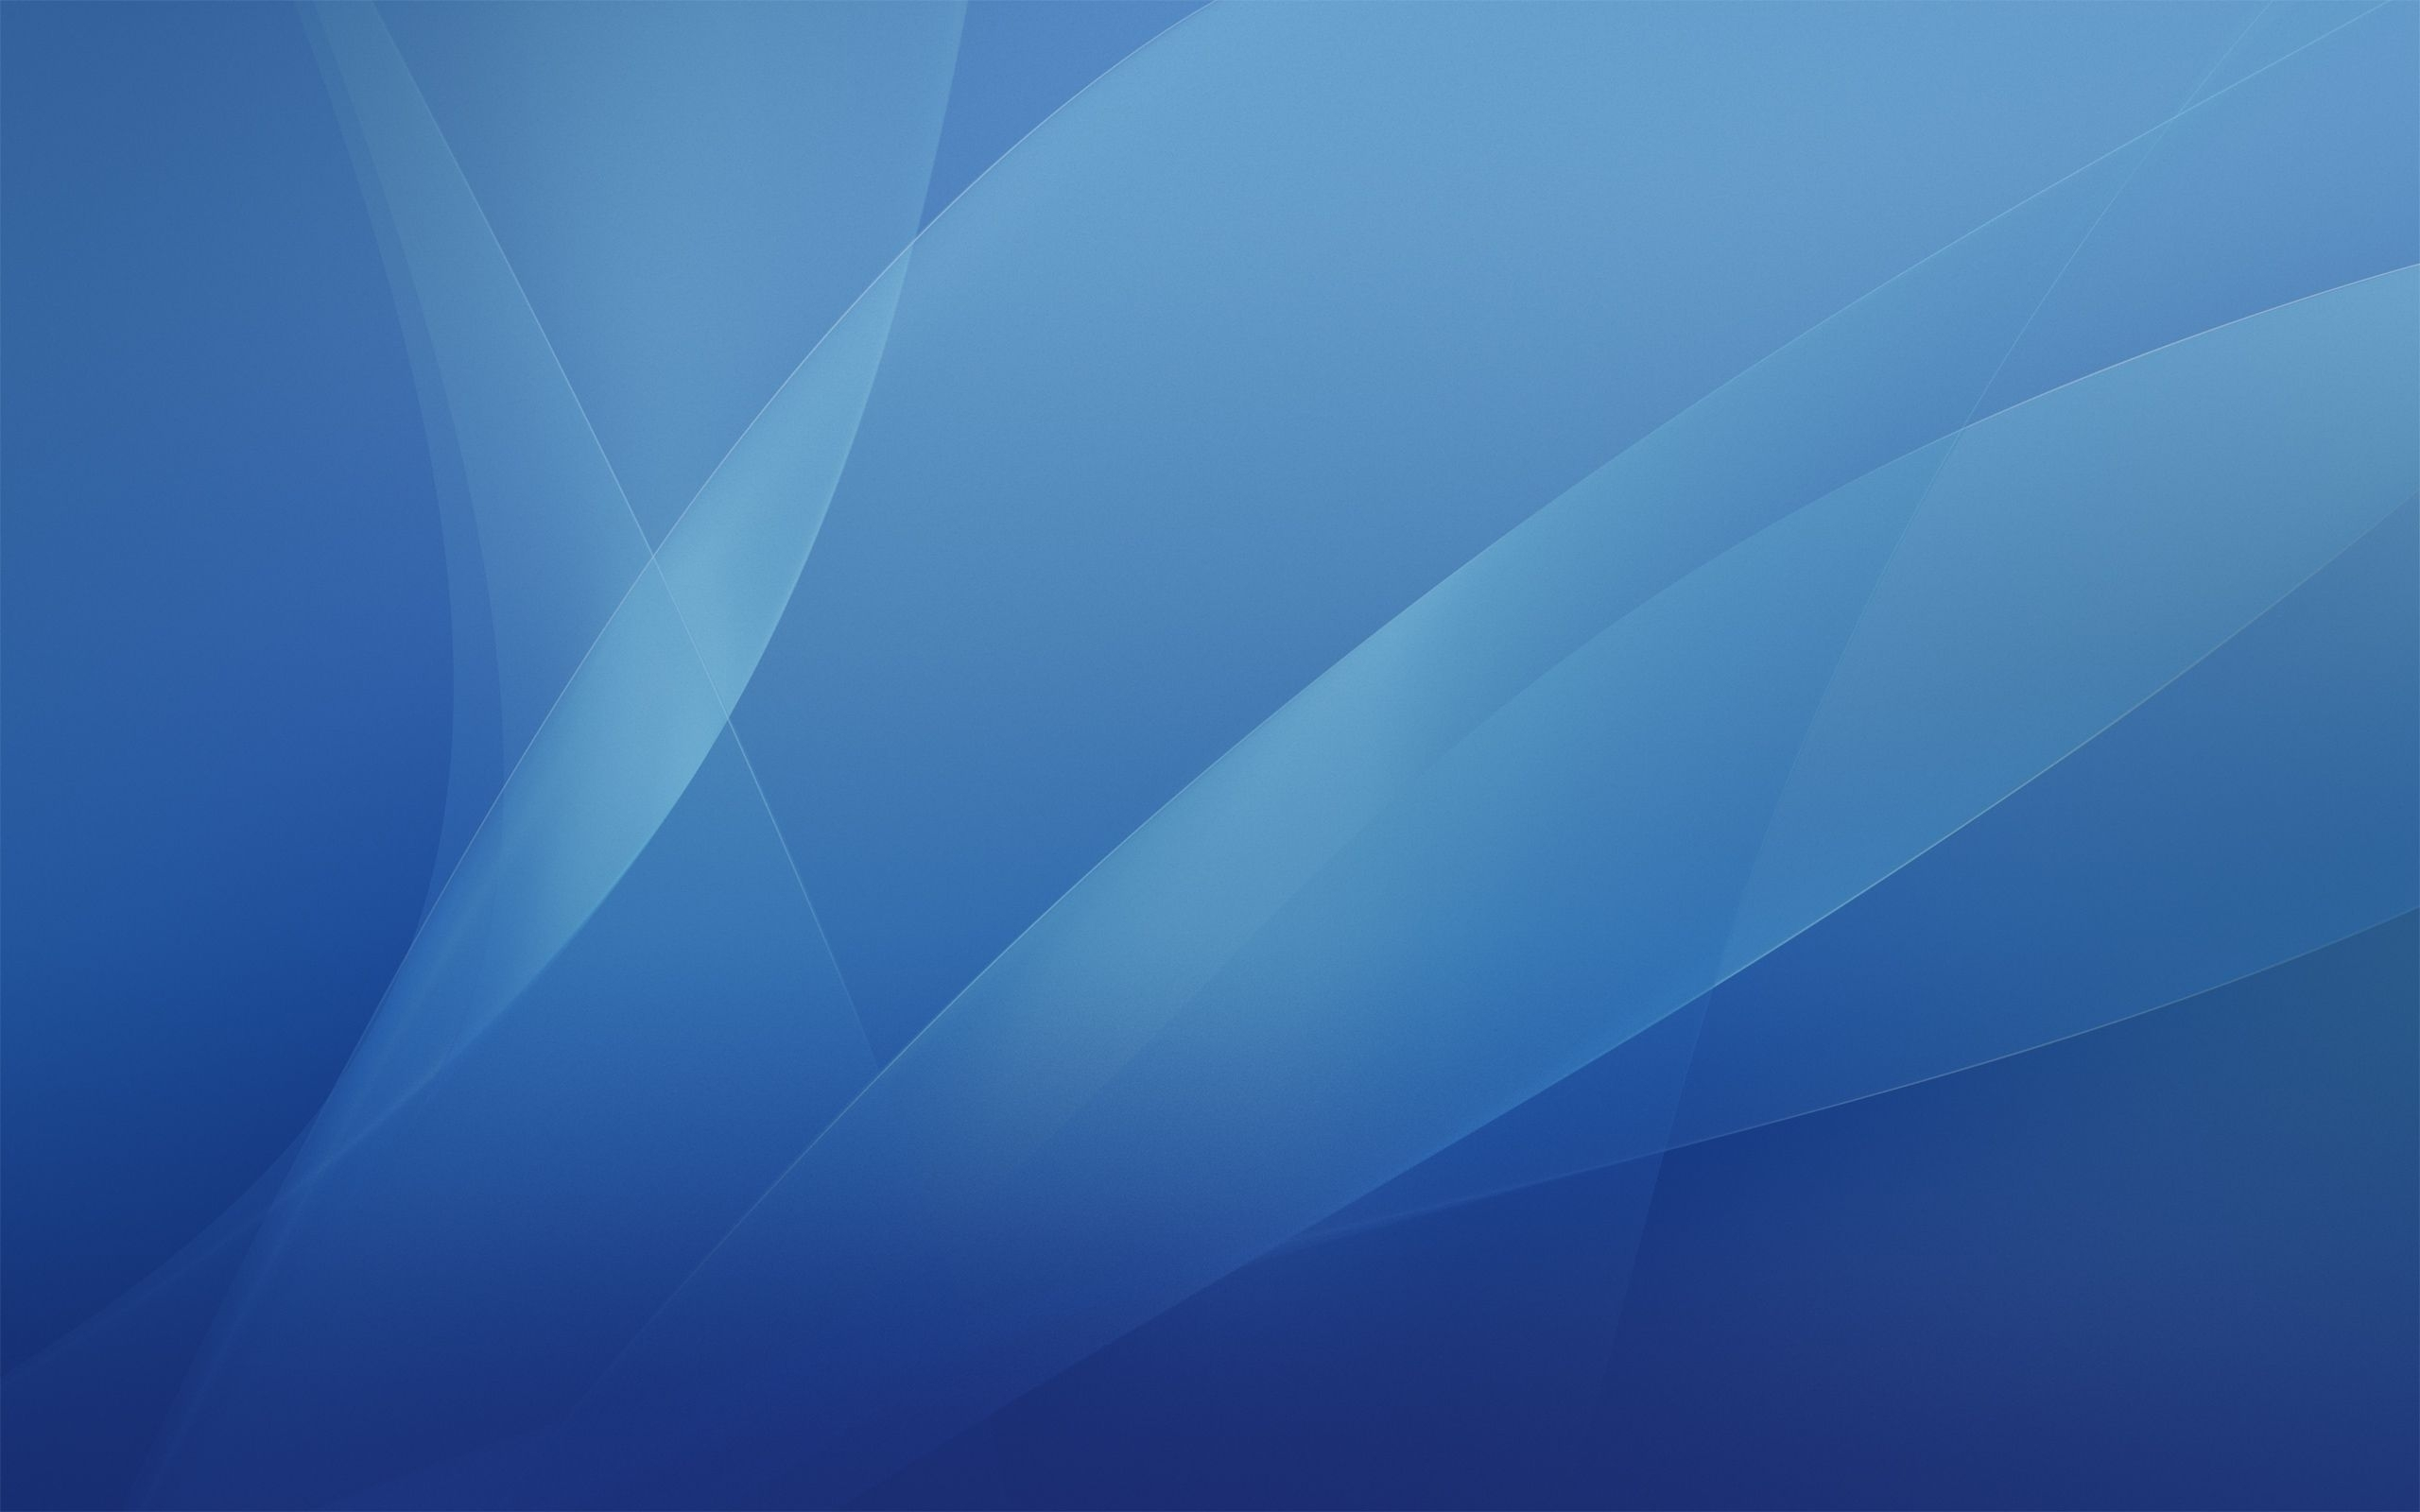 wallpaper android mac os x tiger blue - droidsoft